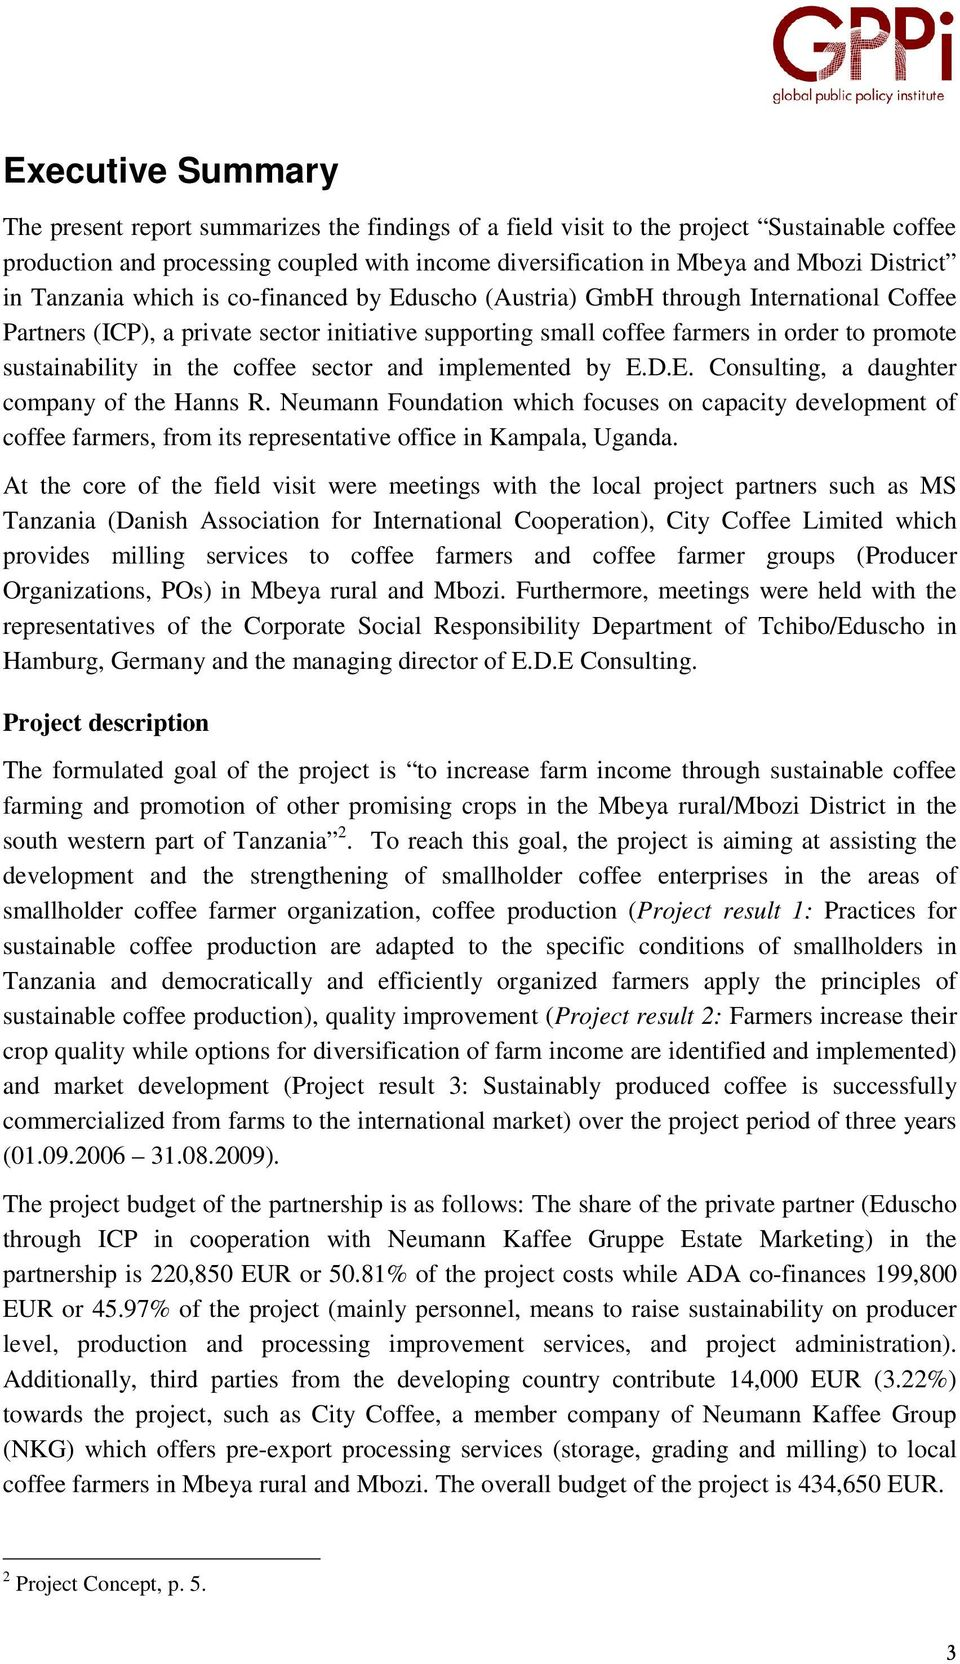 sustainability in the coffee sector and implemented by E.D.E. Consulting, a daughter company of the Hanns R.